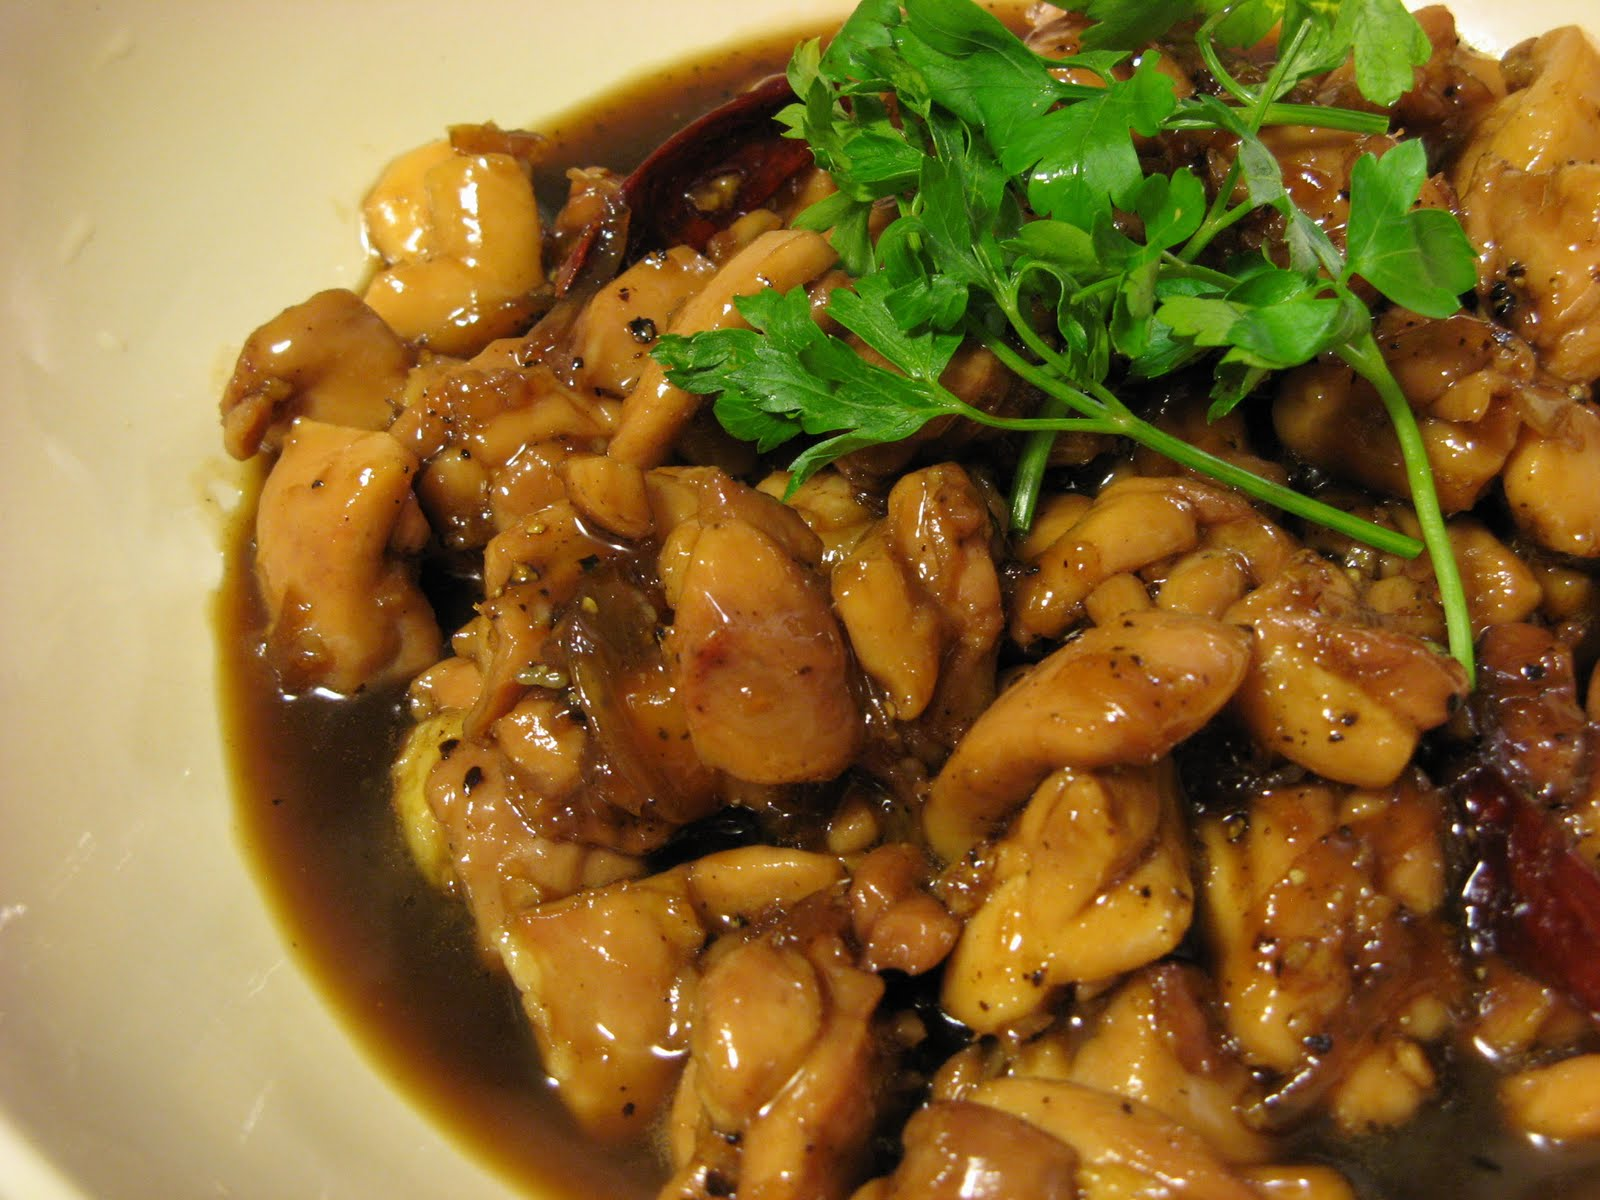 The Well-Fed Newlyweds: Caramelized Black Pepper Chicken